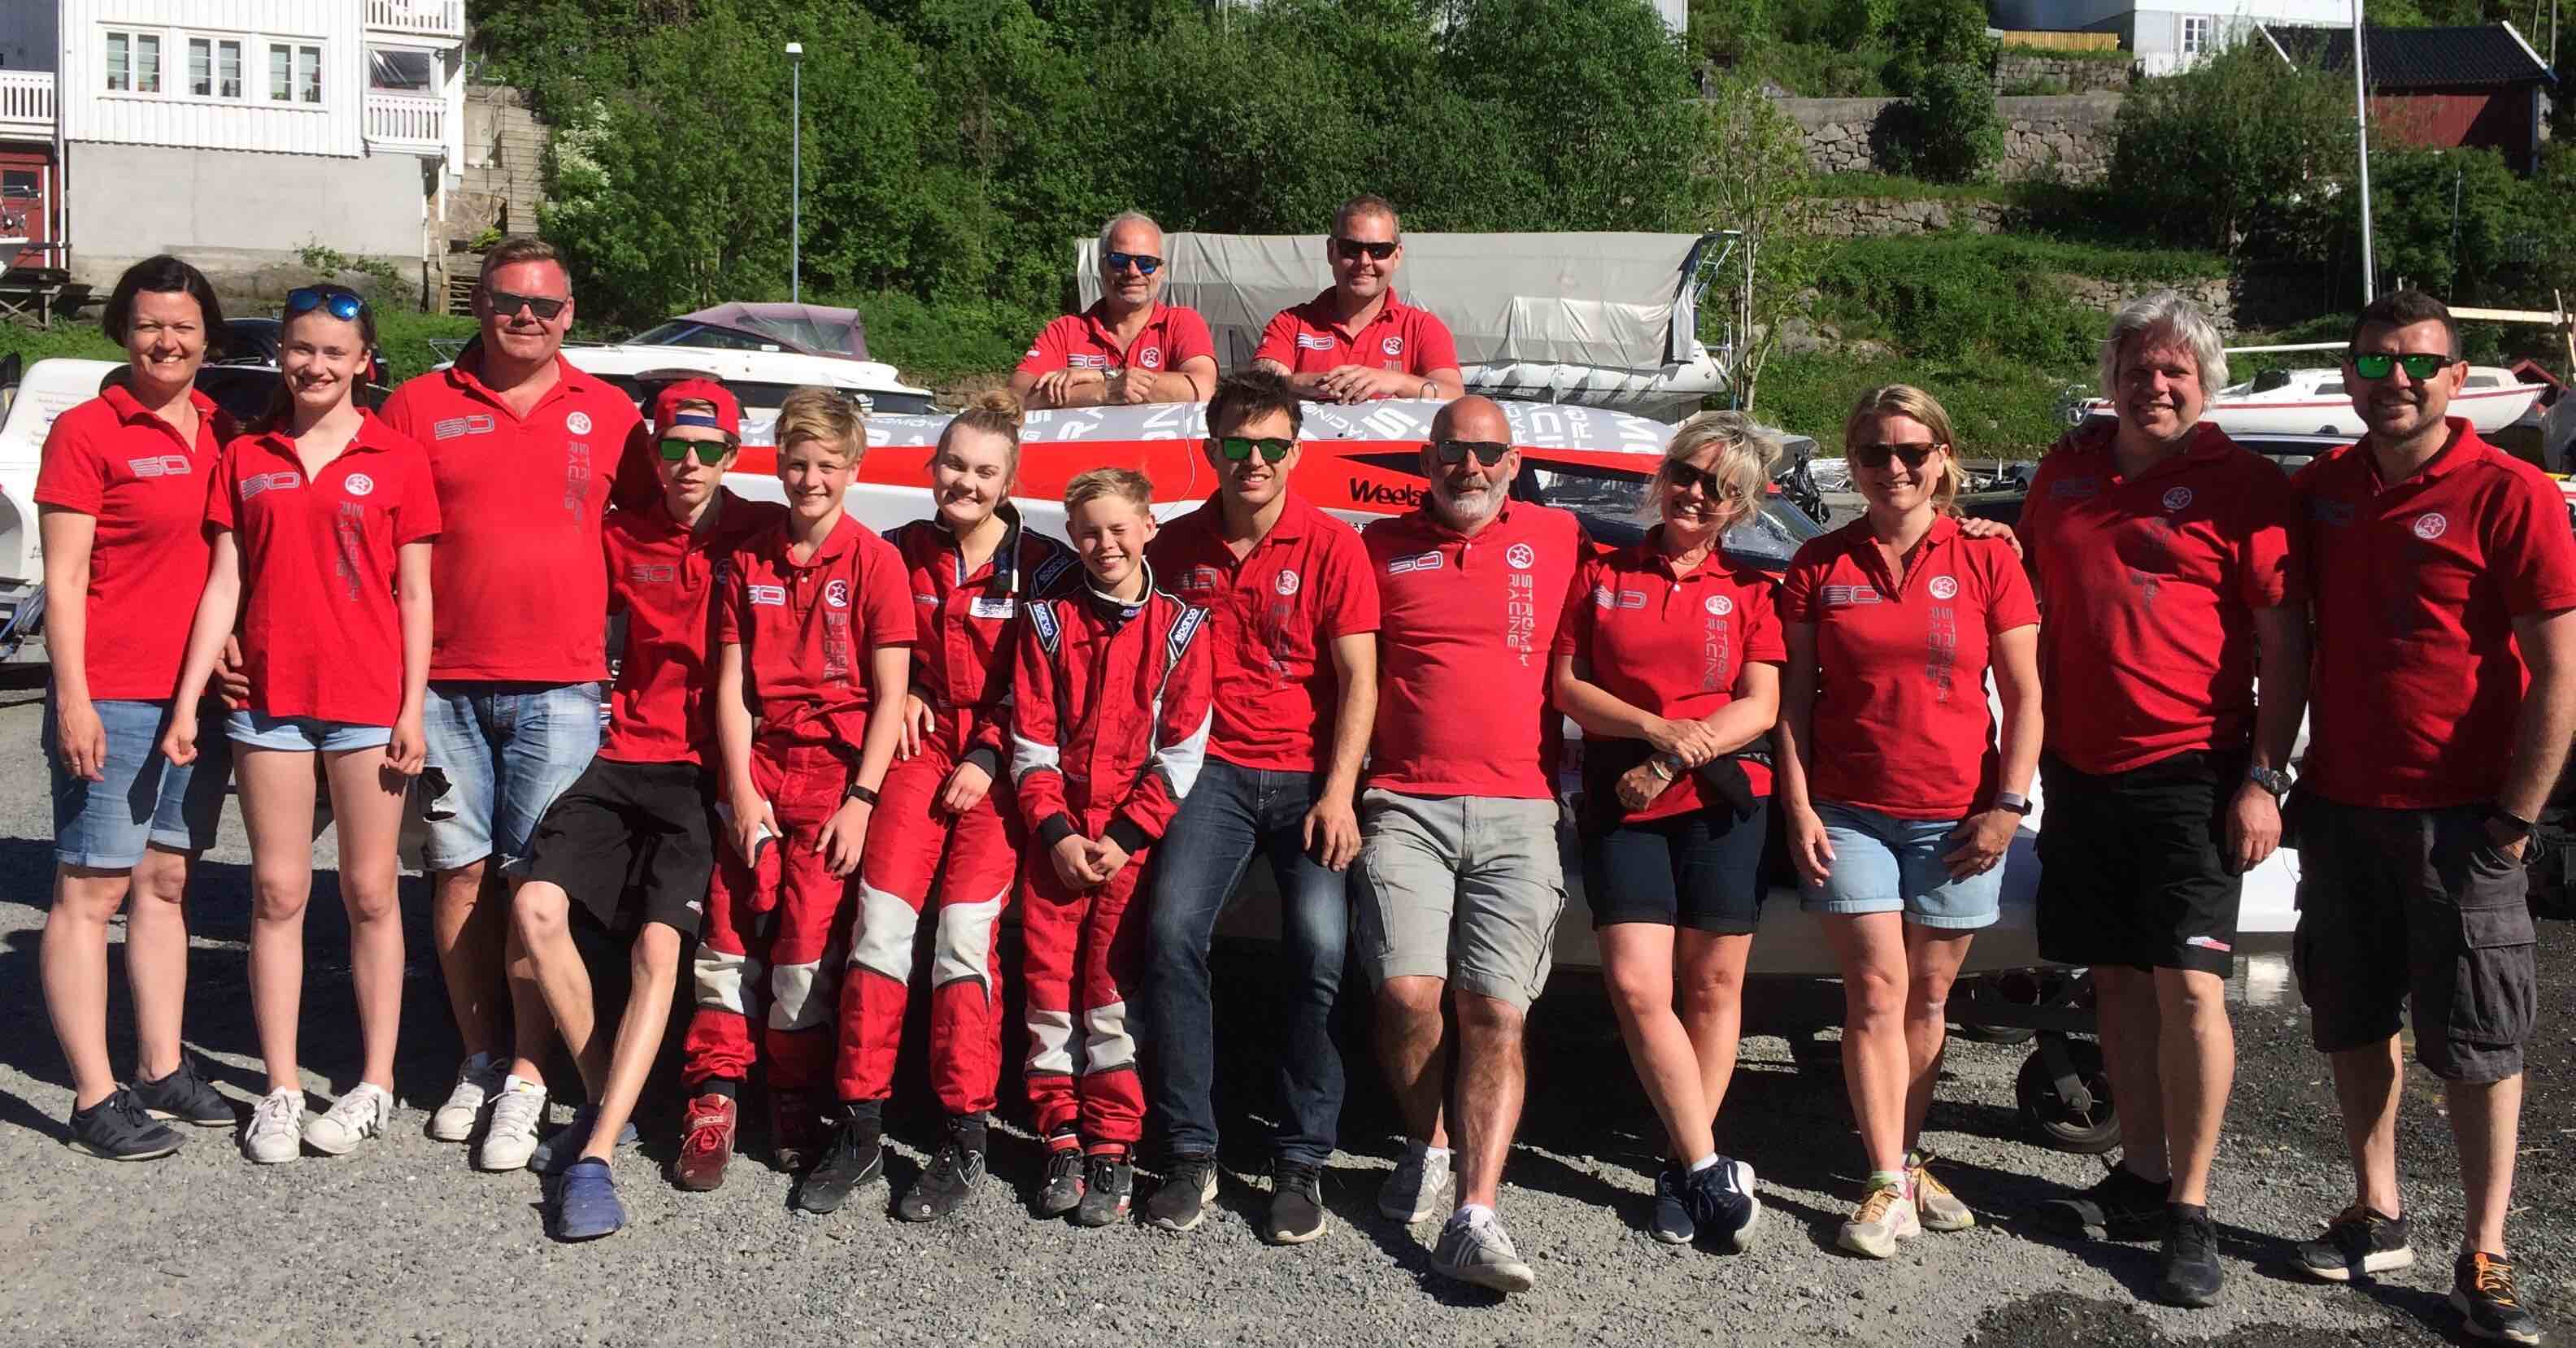 Great results in Tvedestrand